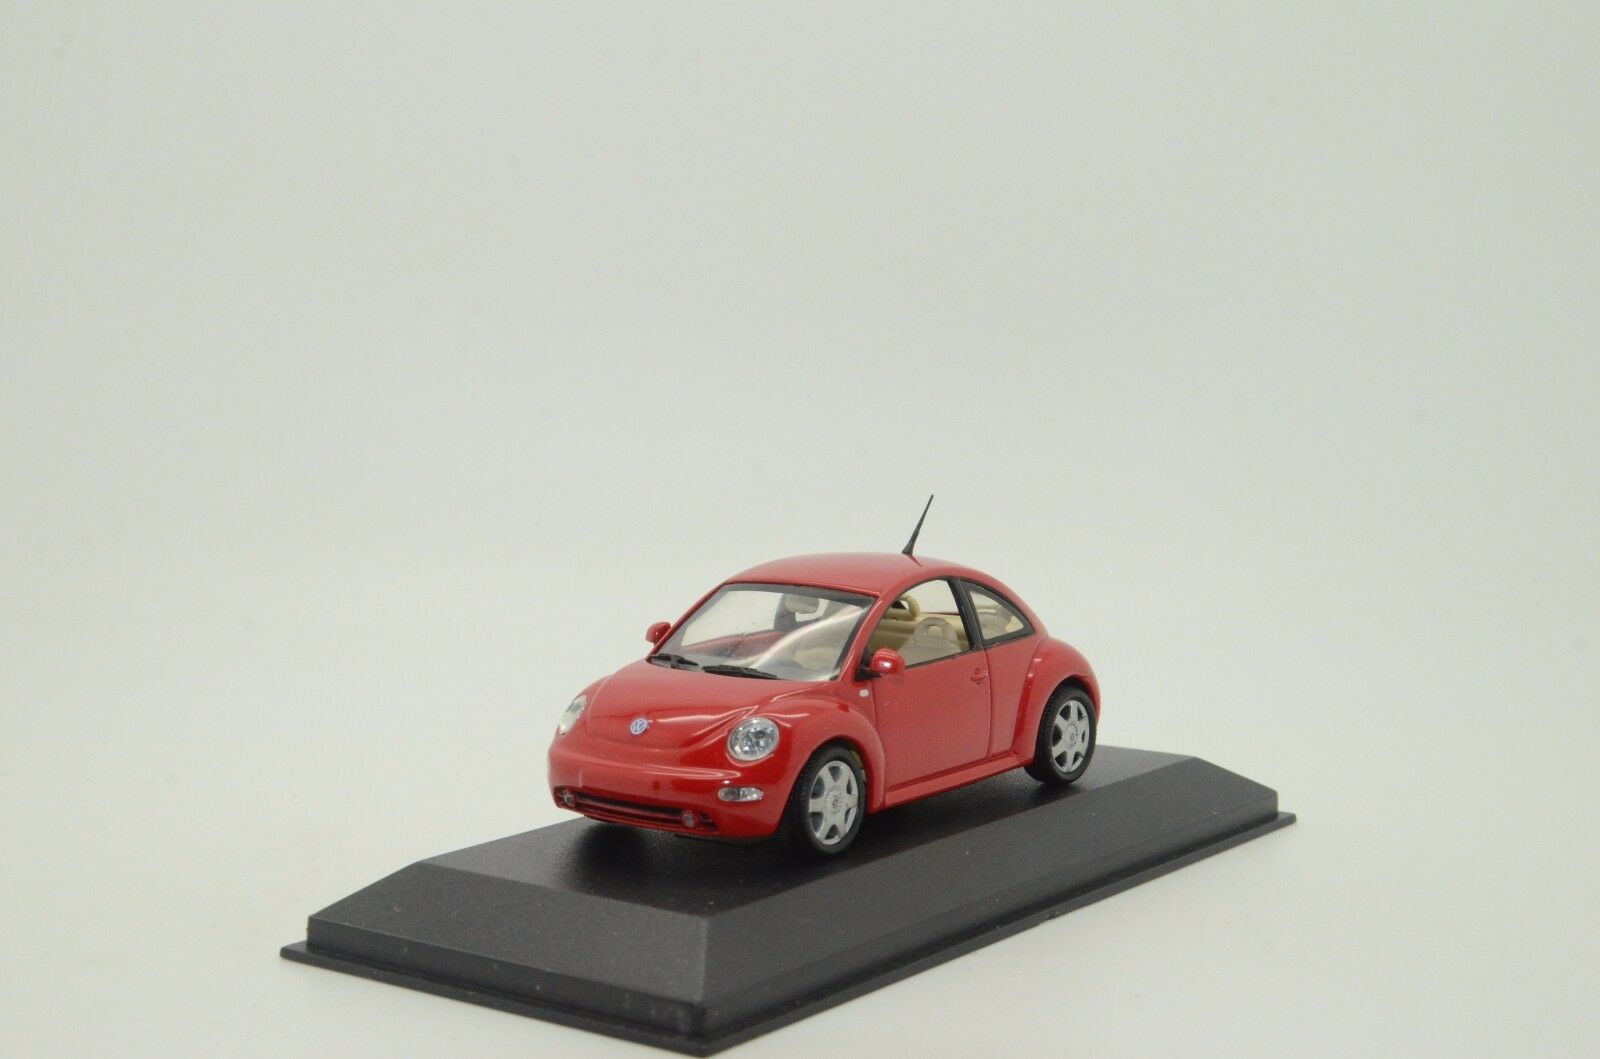 RARE    VW Beetle Red Minichamps 58001 1 43